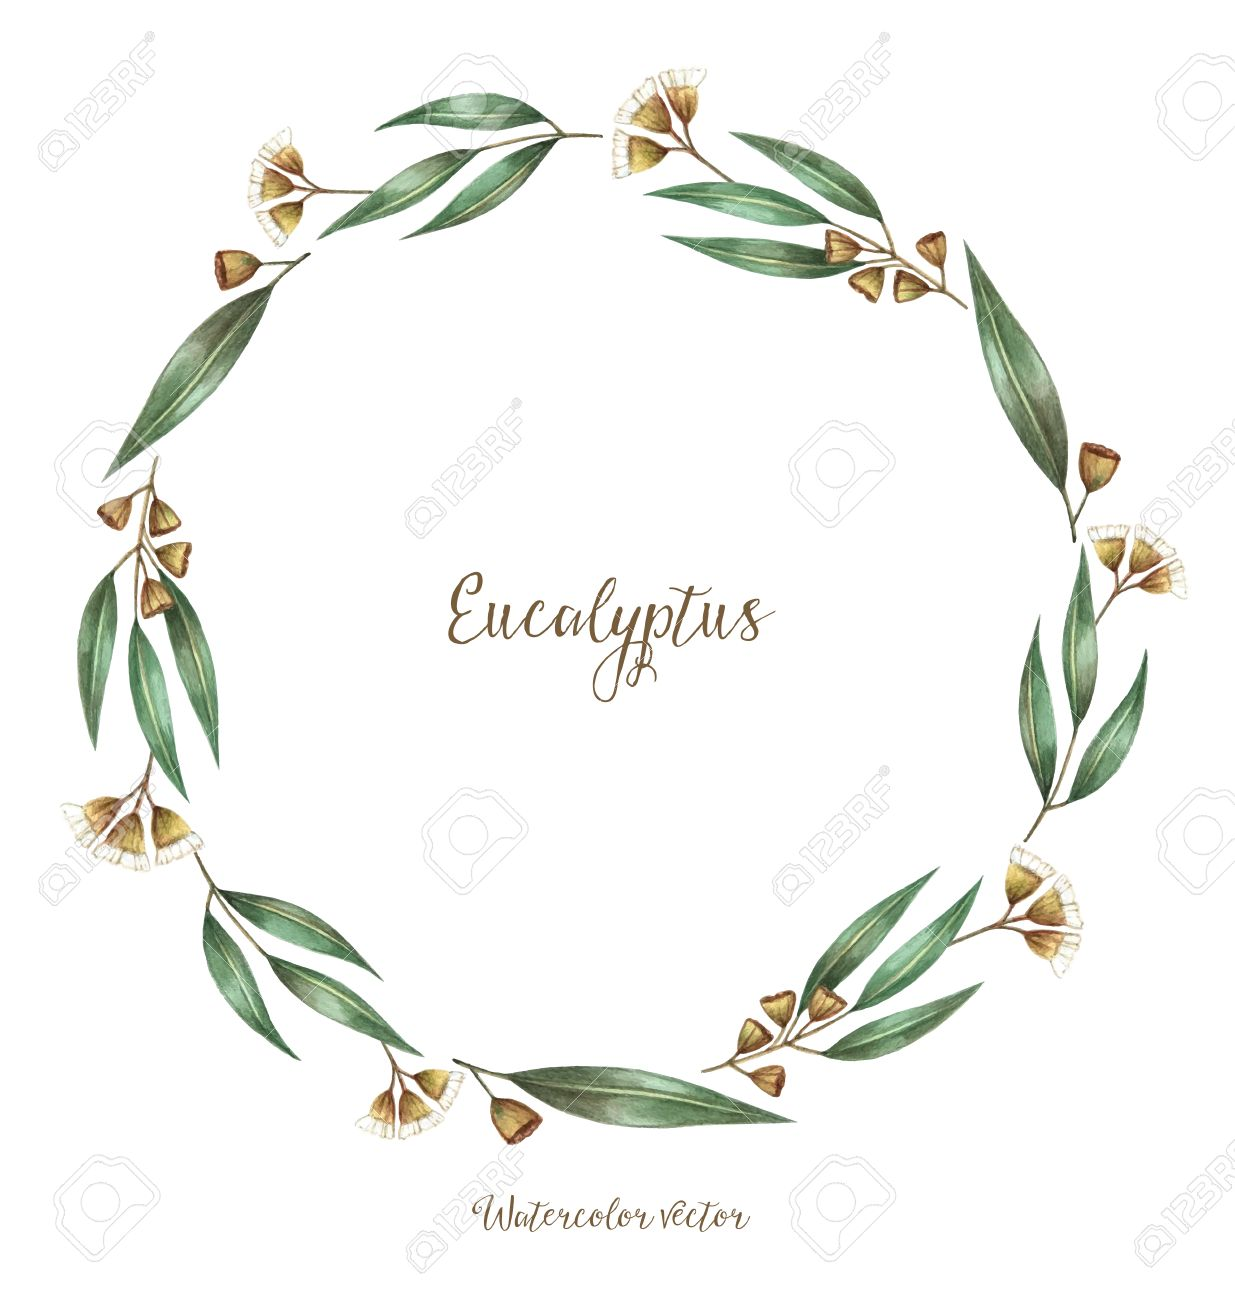 Round frame with decorative branch vector illustration stock - Watercolor Decorative Elements Round Frame Of Eucalyptus Vector Illustration Place For Your